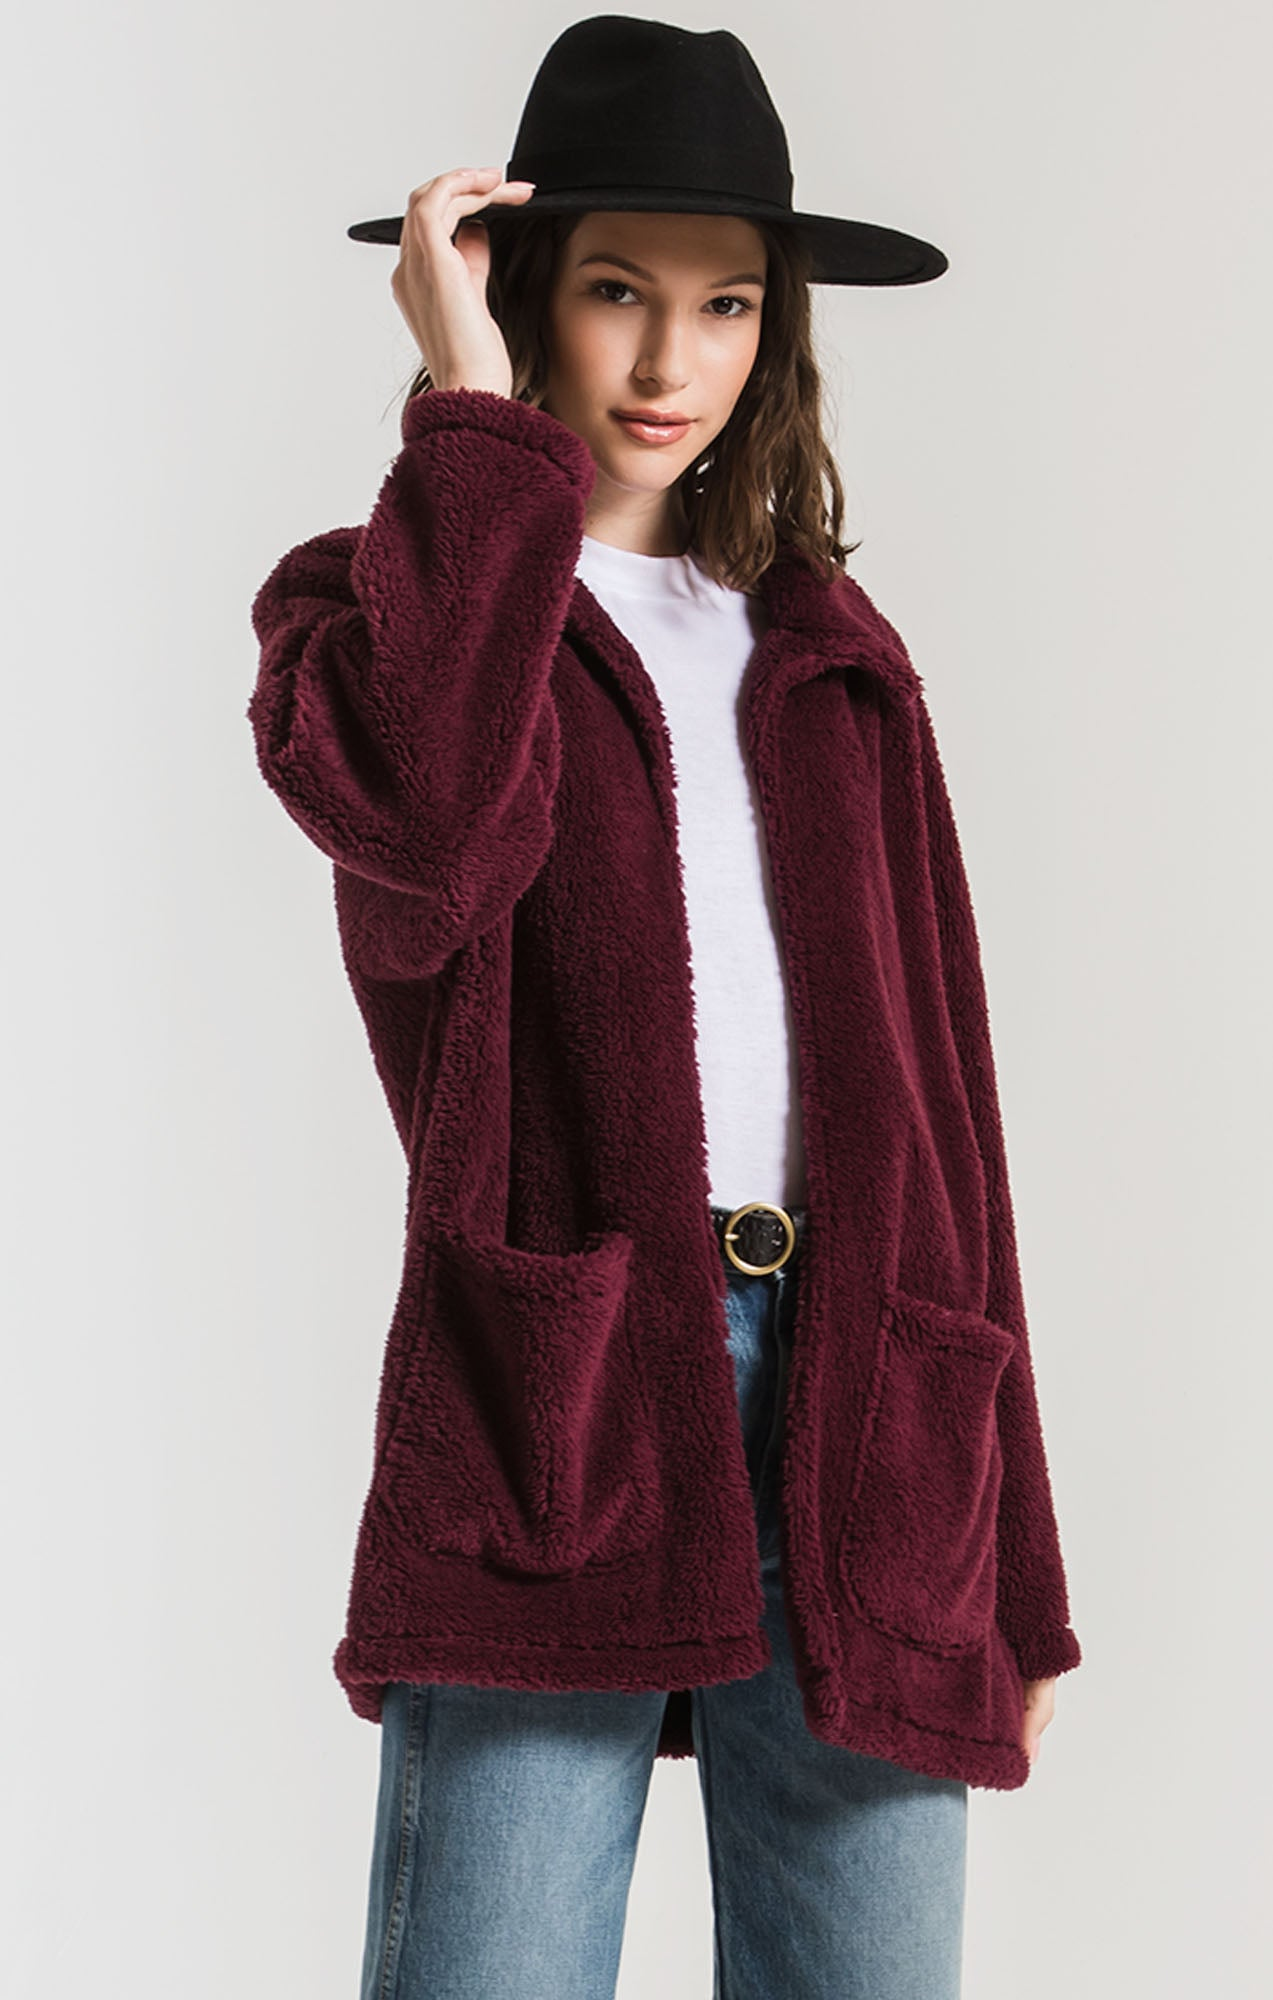 Jackets Sherpa Teddy Bear Coat Mauve Wine